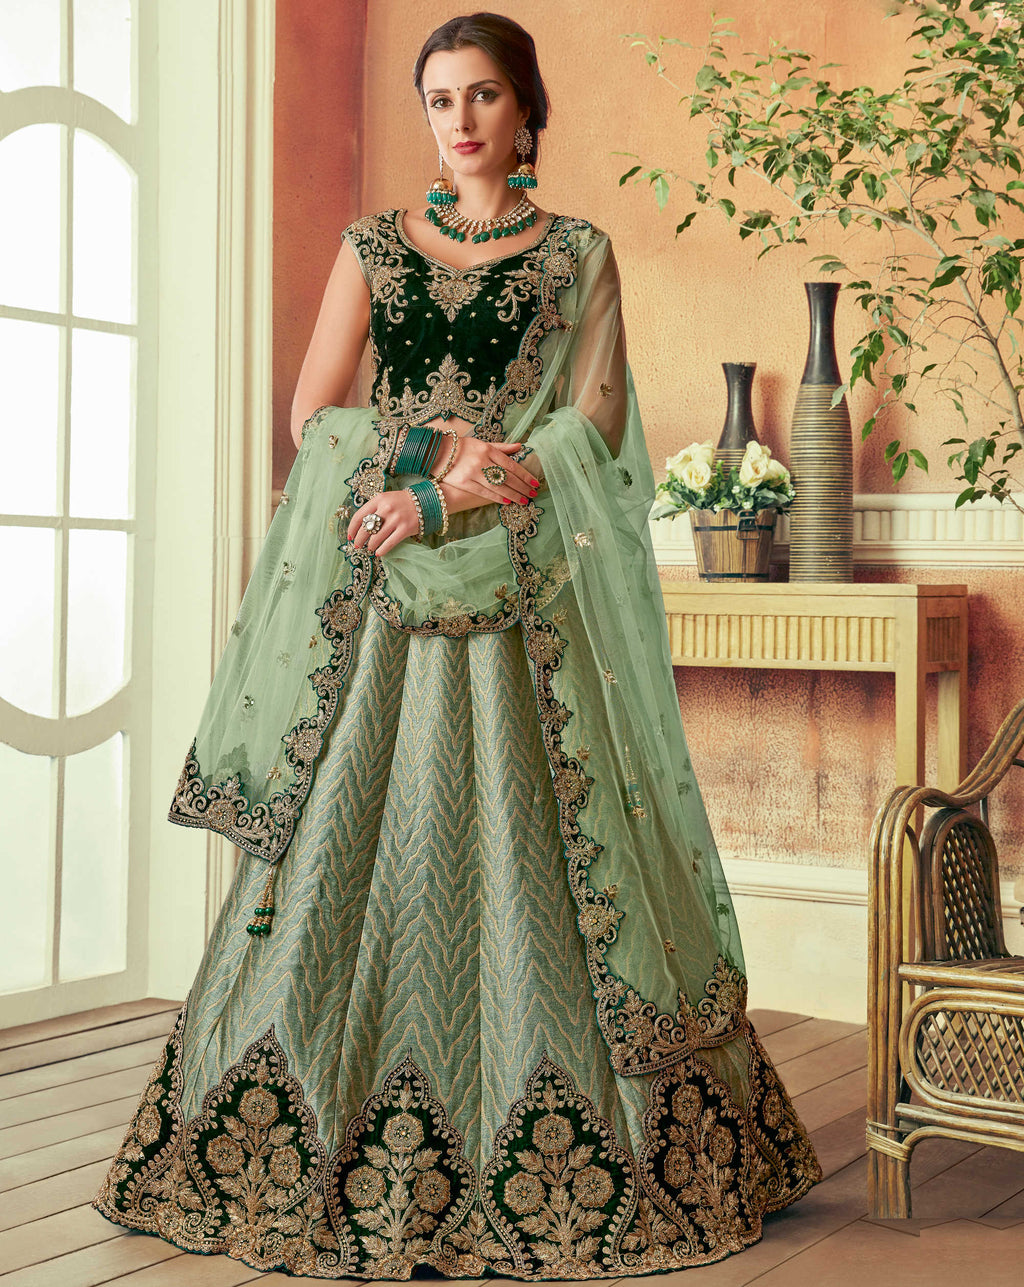 Aqua Green Color Silk Beautiful Wedding Wear Lehengas NYF-5554